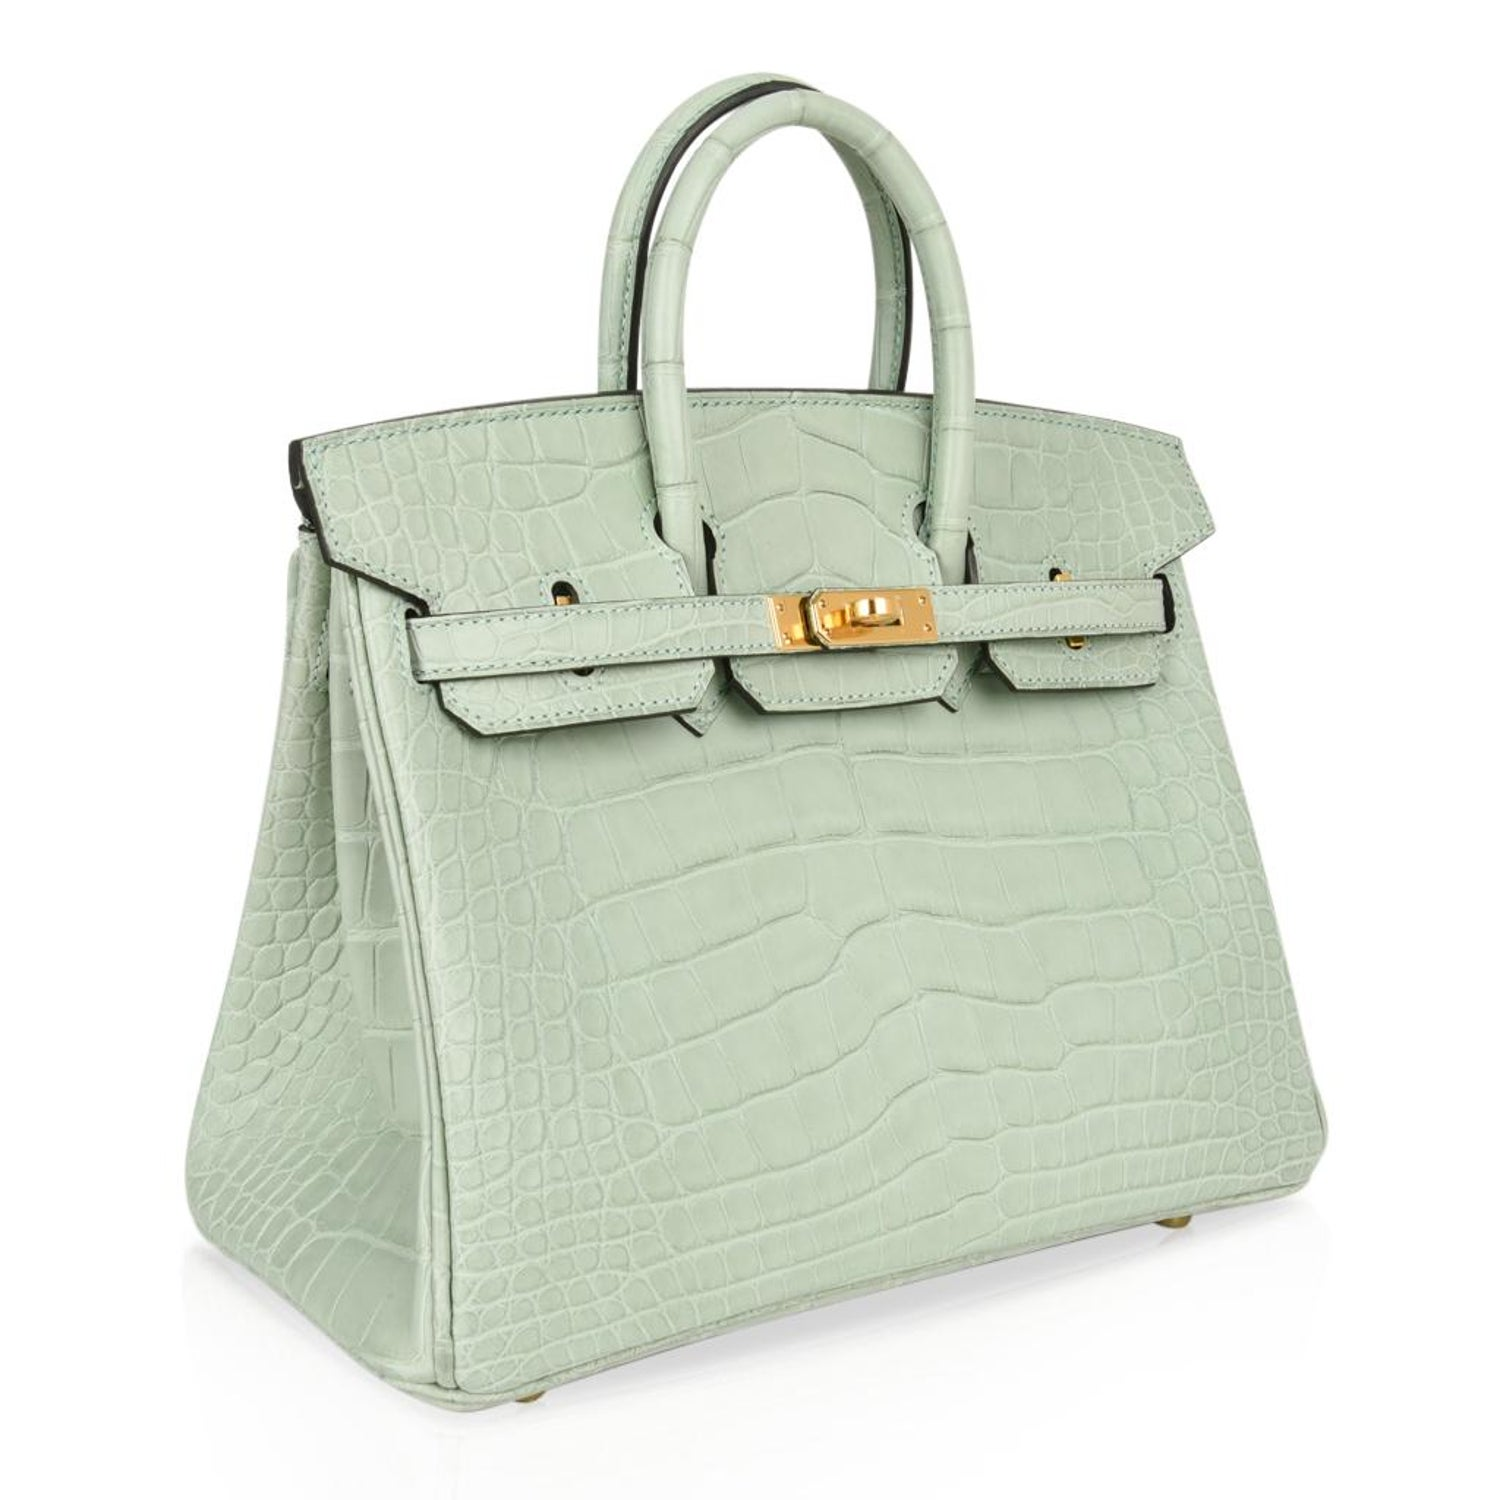 83dc55107f Hermes Birkin 25 Bag Vert D Eau Matte Alligator Gold Hardware Very Rare For  Sale at 1stdibs